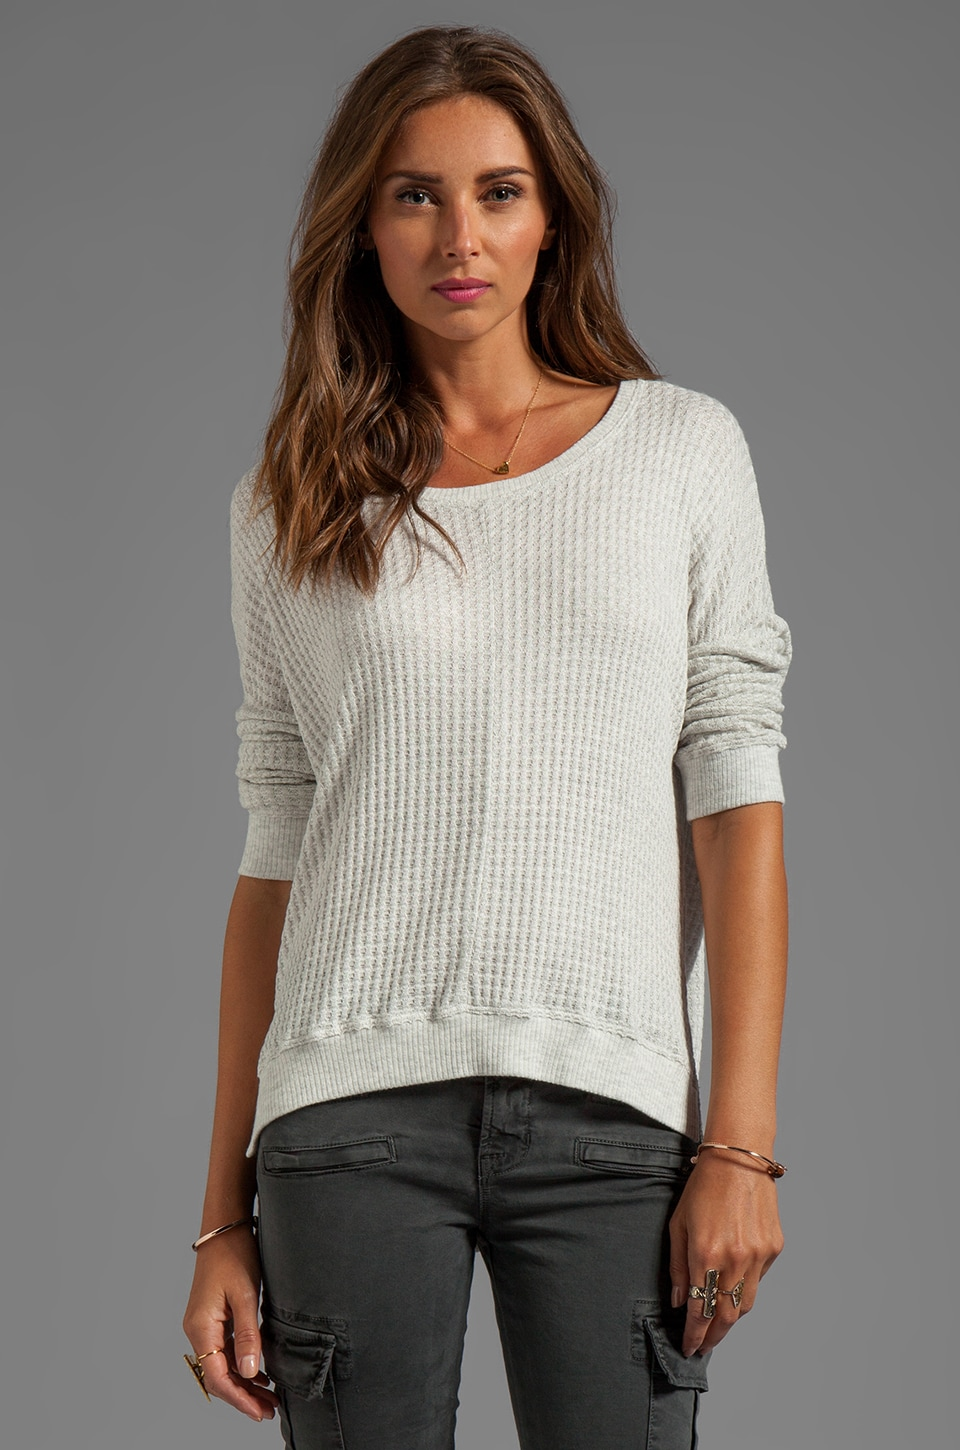 Velvet by Graham & Spencer Regine Thermal Knit Over Sized Long Sleeve in Cream